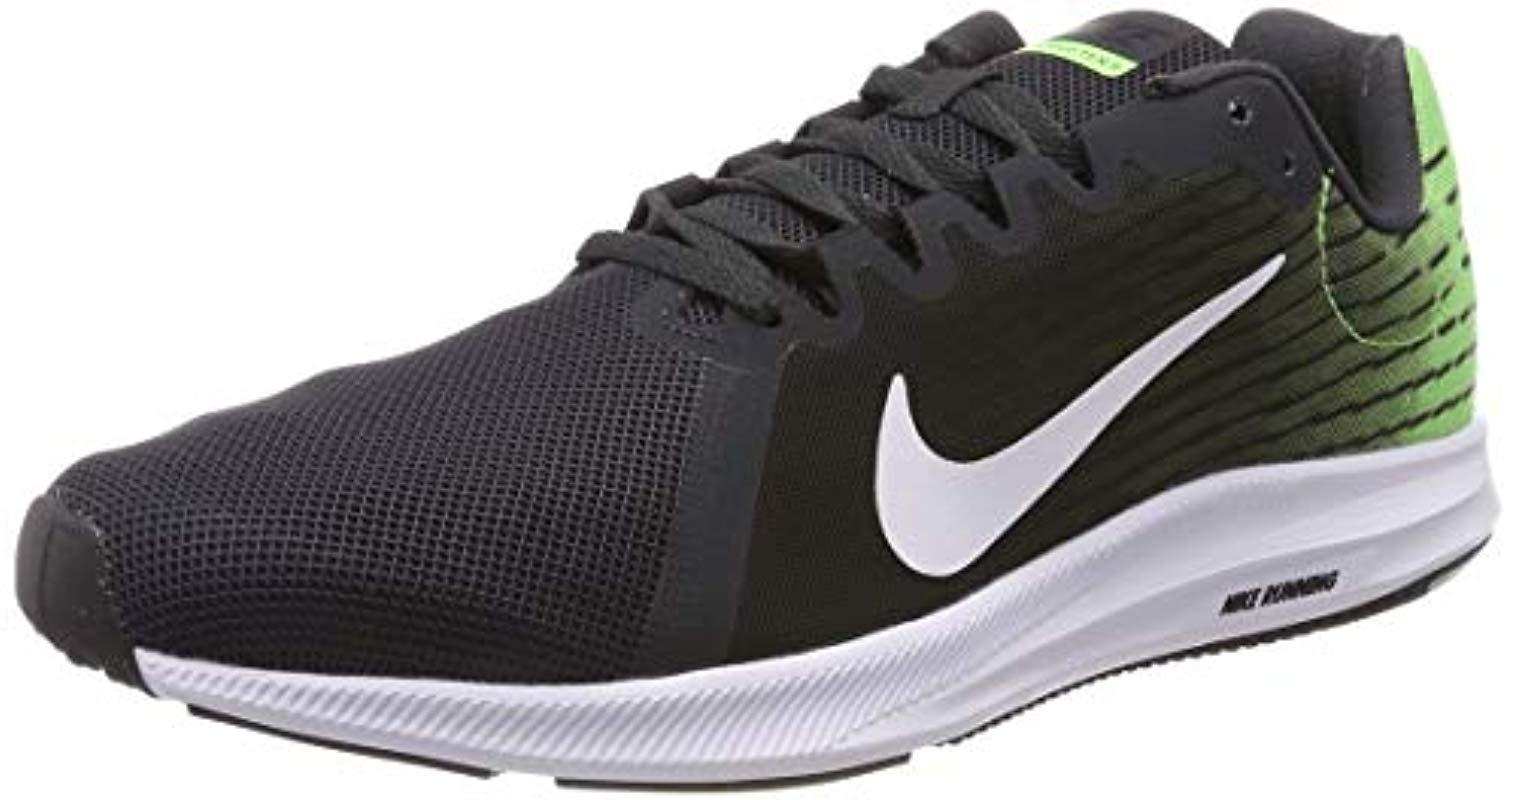 best sneakers e5945 77b19 Nike Downshifter 8 Running Shoes, Multicolour (anthracite white lime ...